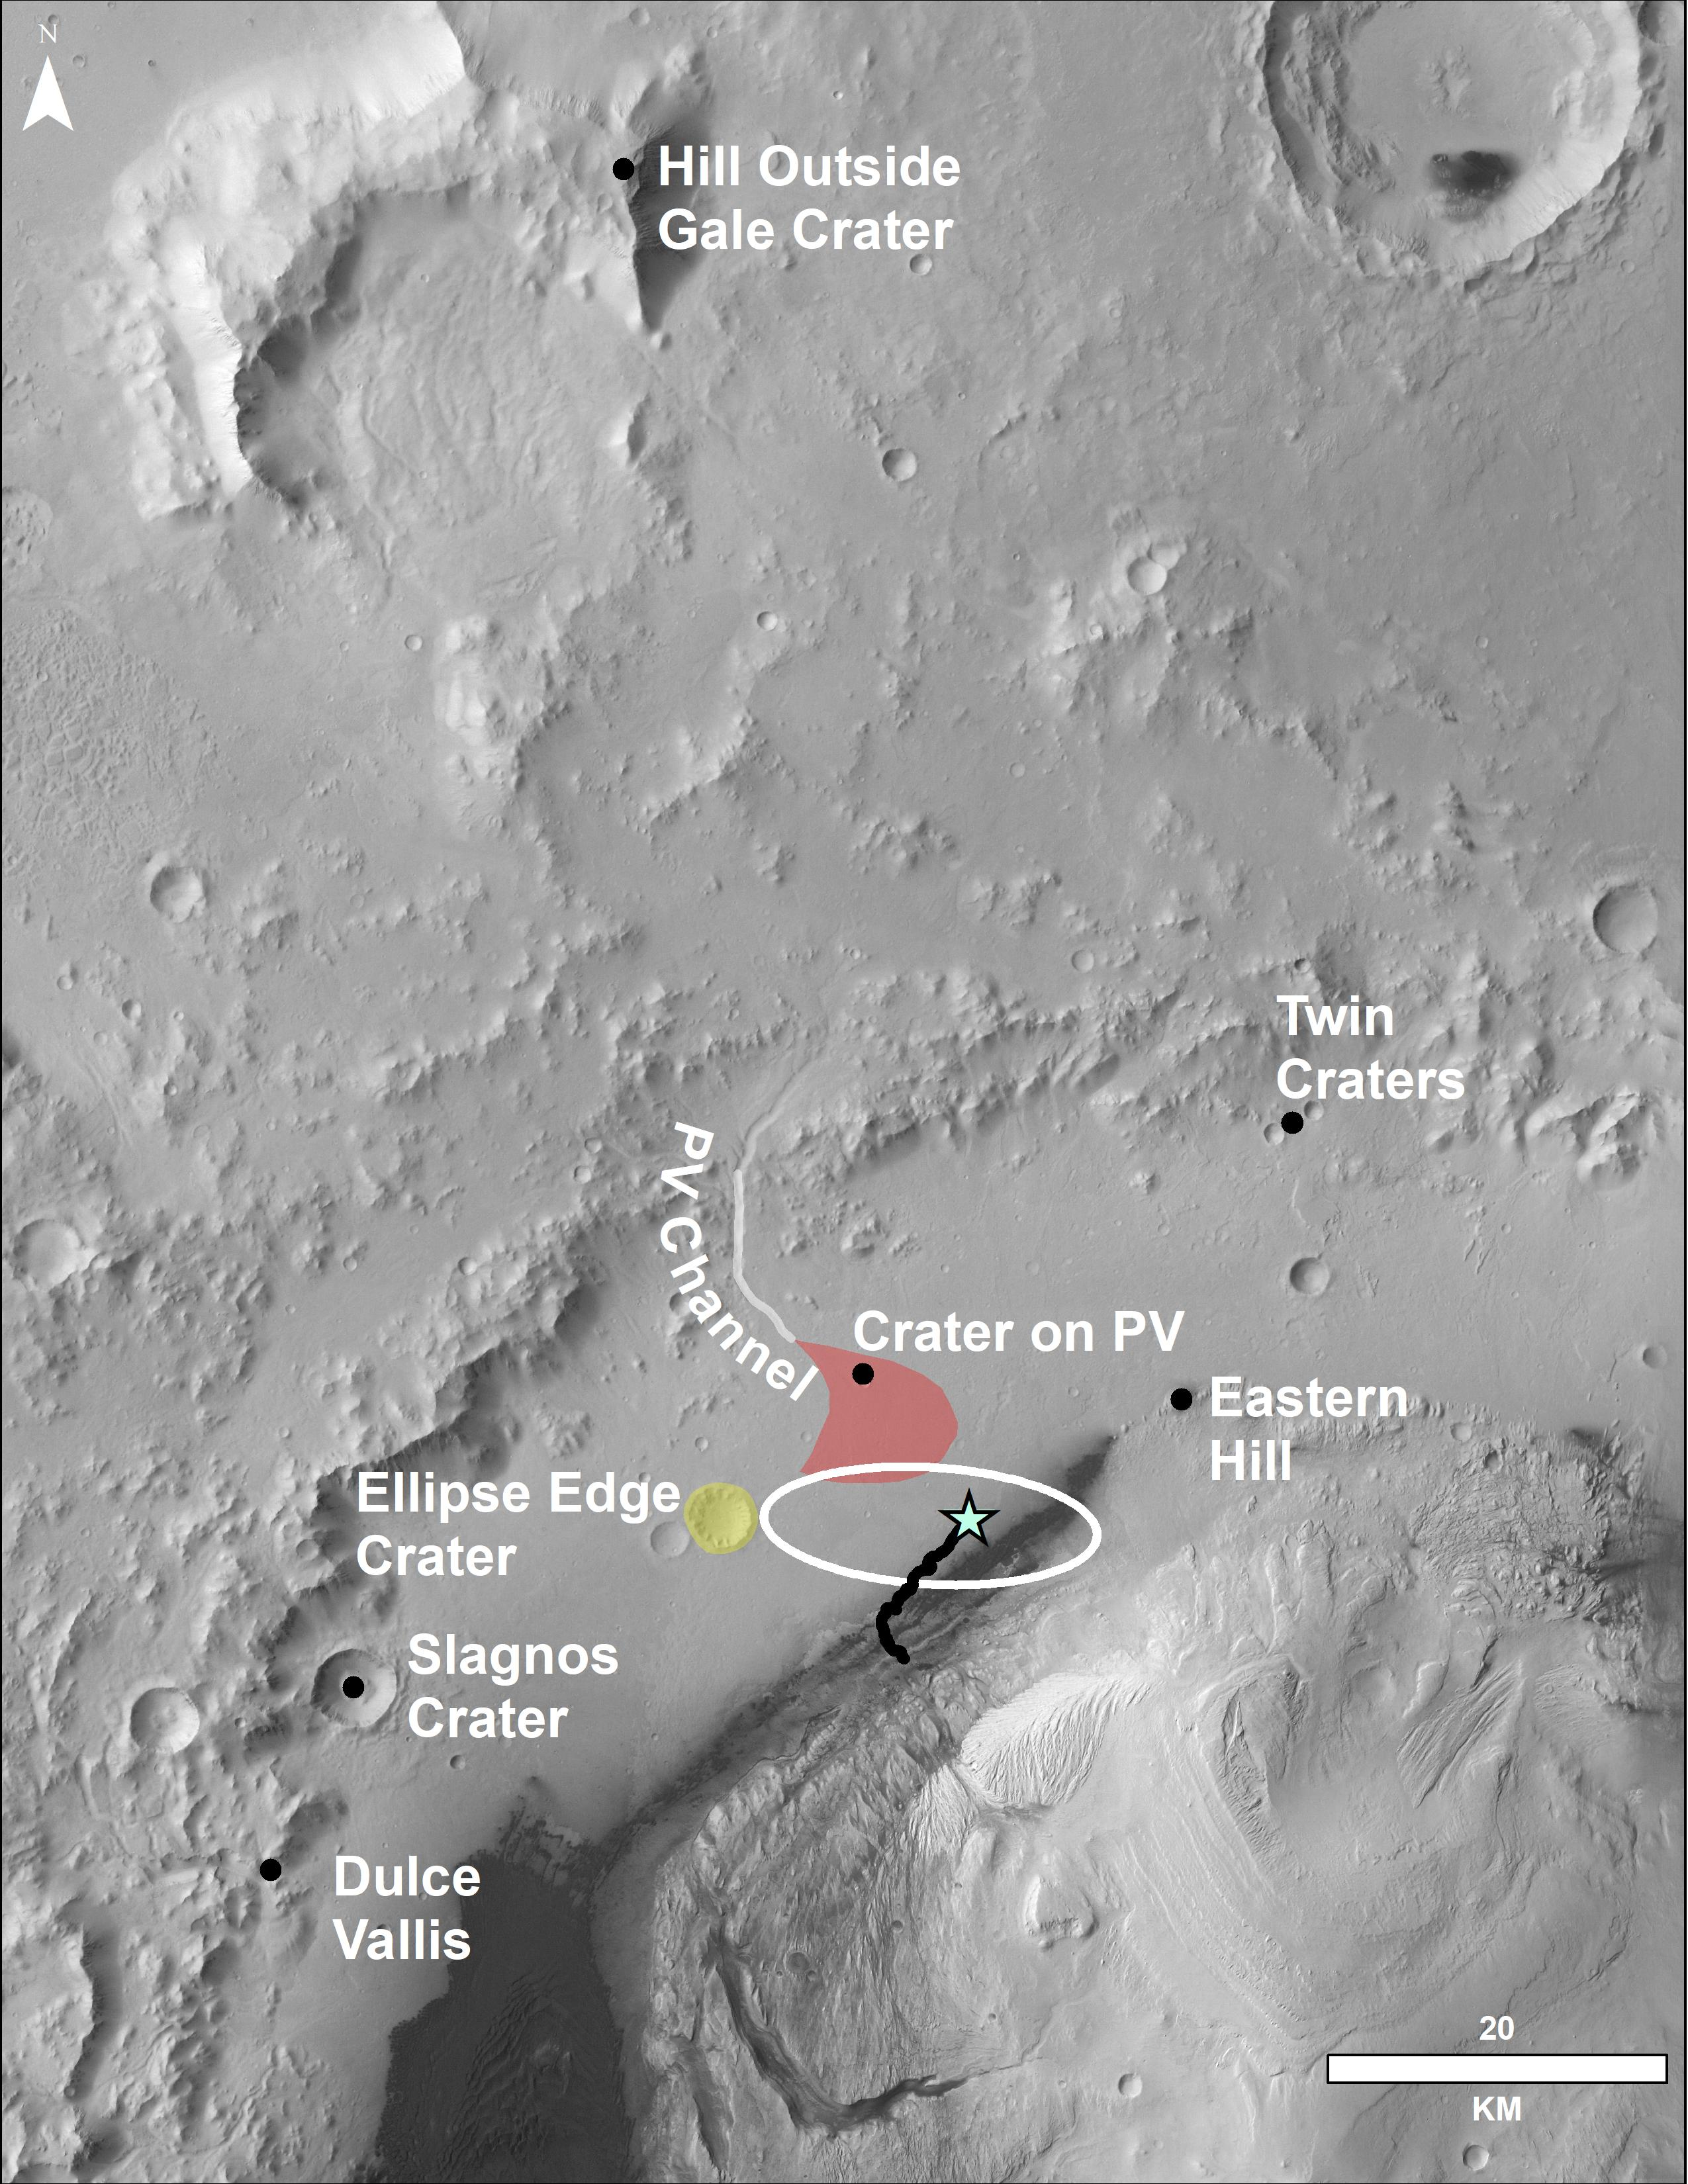 Locator Map for Features in Curiosity Panorama